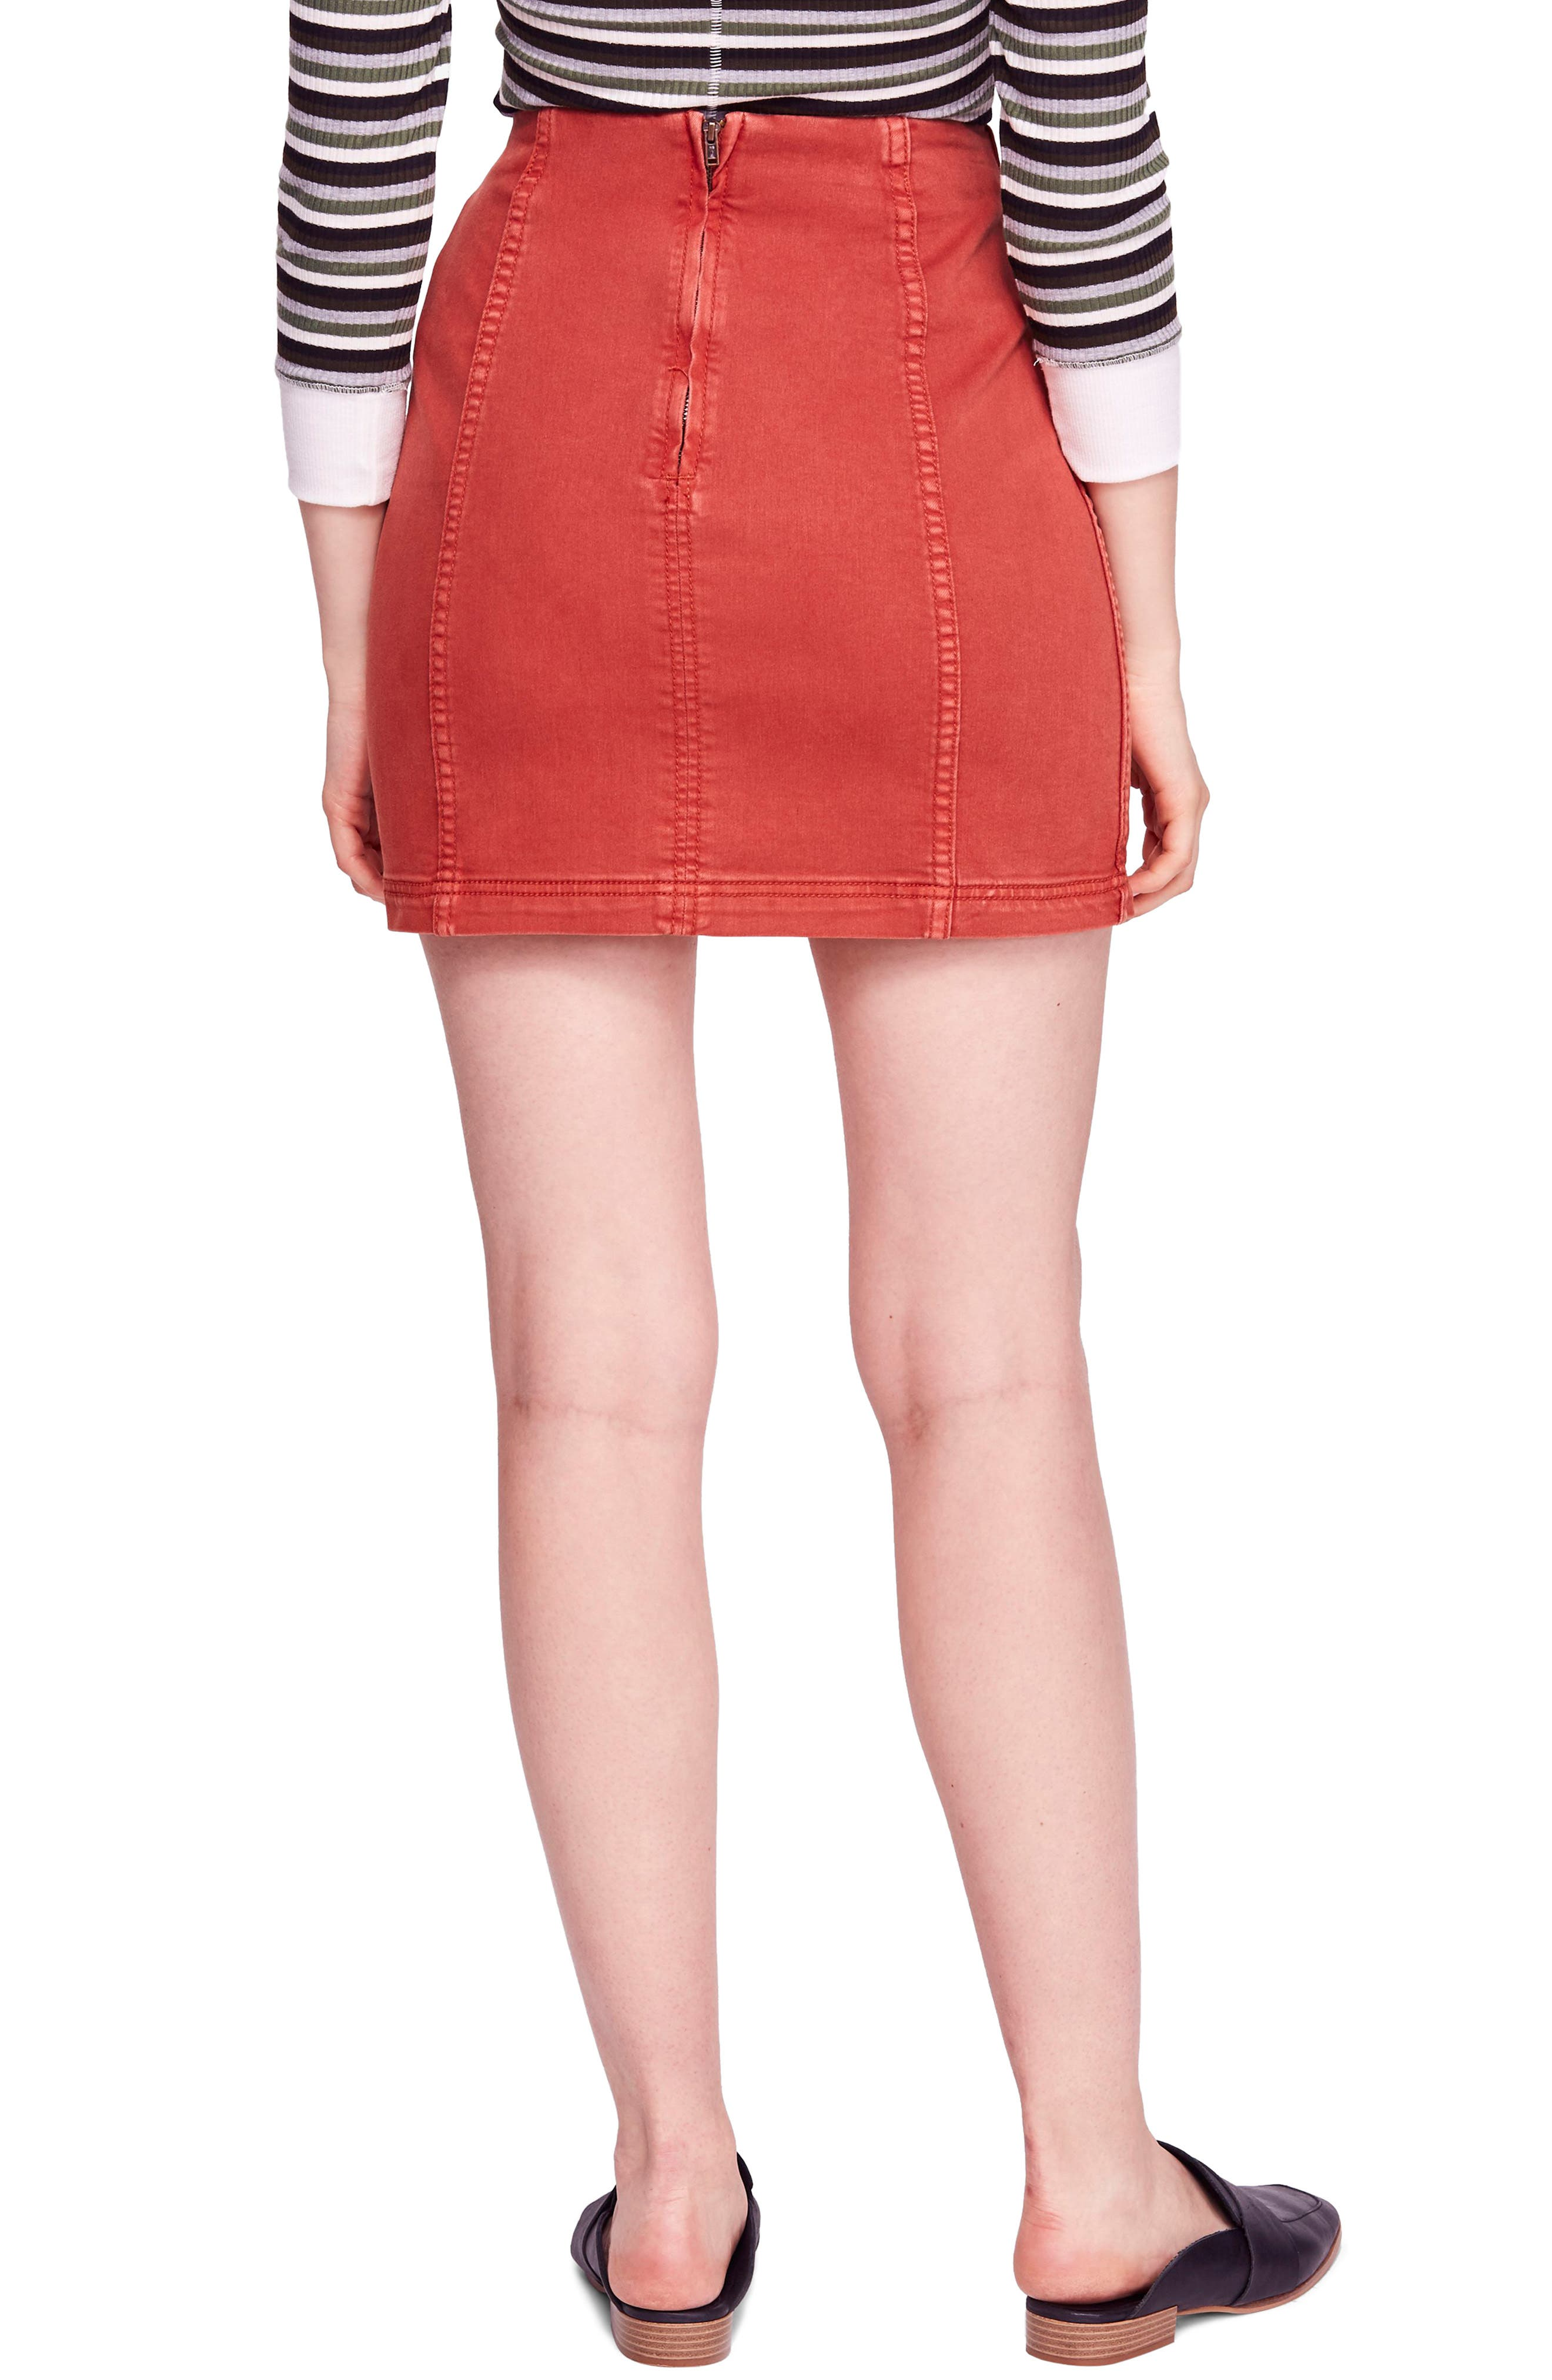 FREE PEOPLE, We the Free by Free People Modern Denim Skirt, Alternate thumbnail 2, color, TERRACOTTA